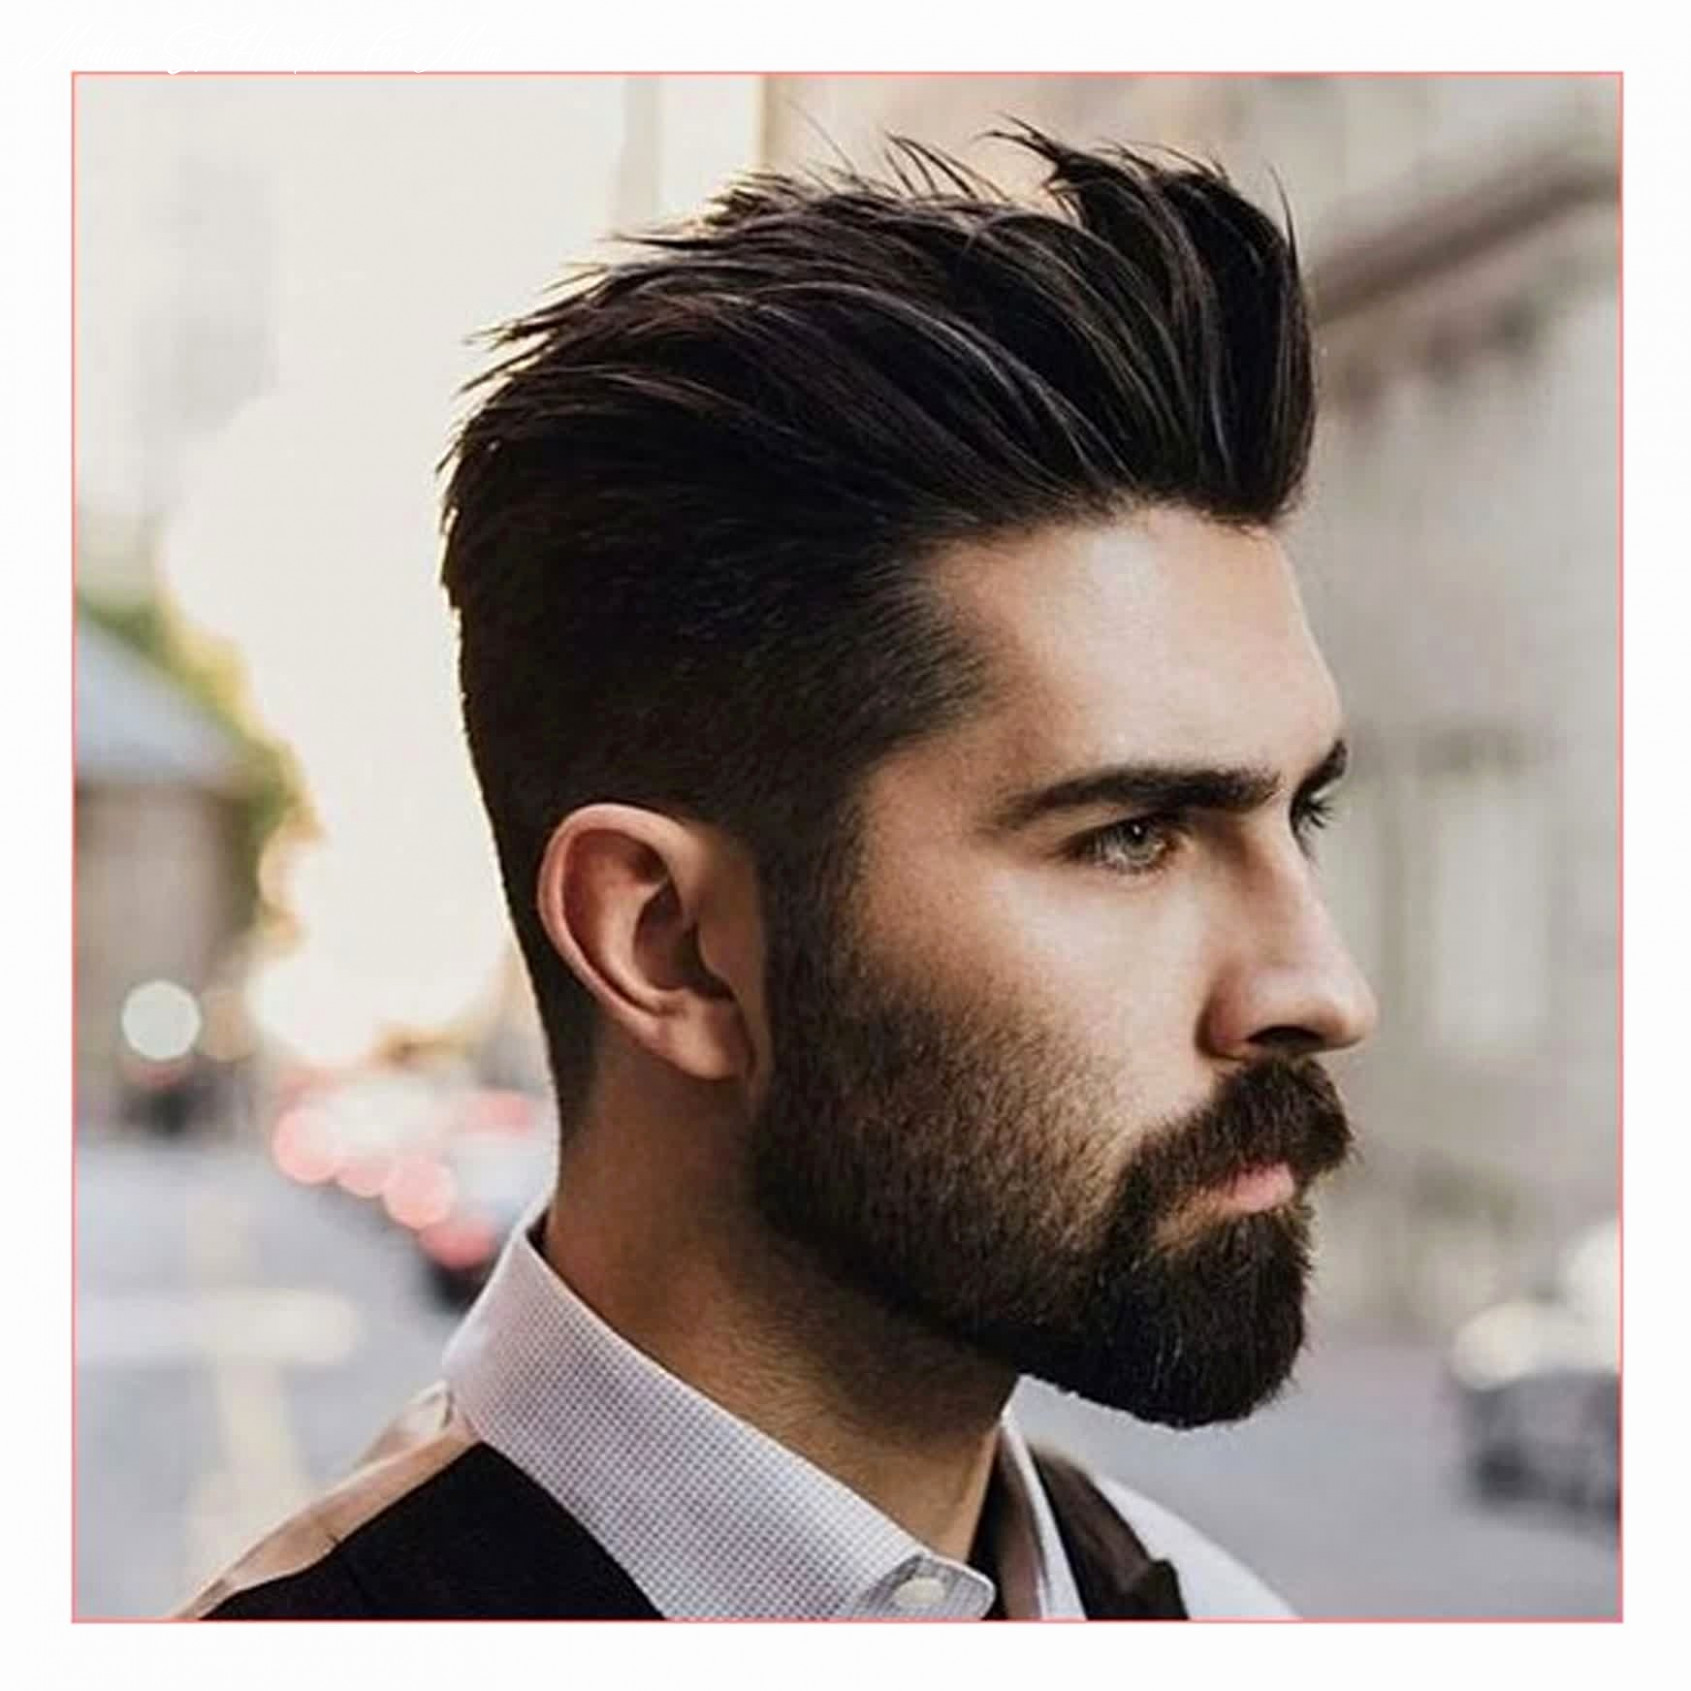 Medium size hair style | find your perfect hair style medium size hairstyle for man